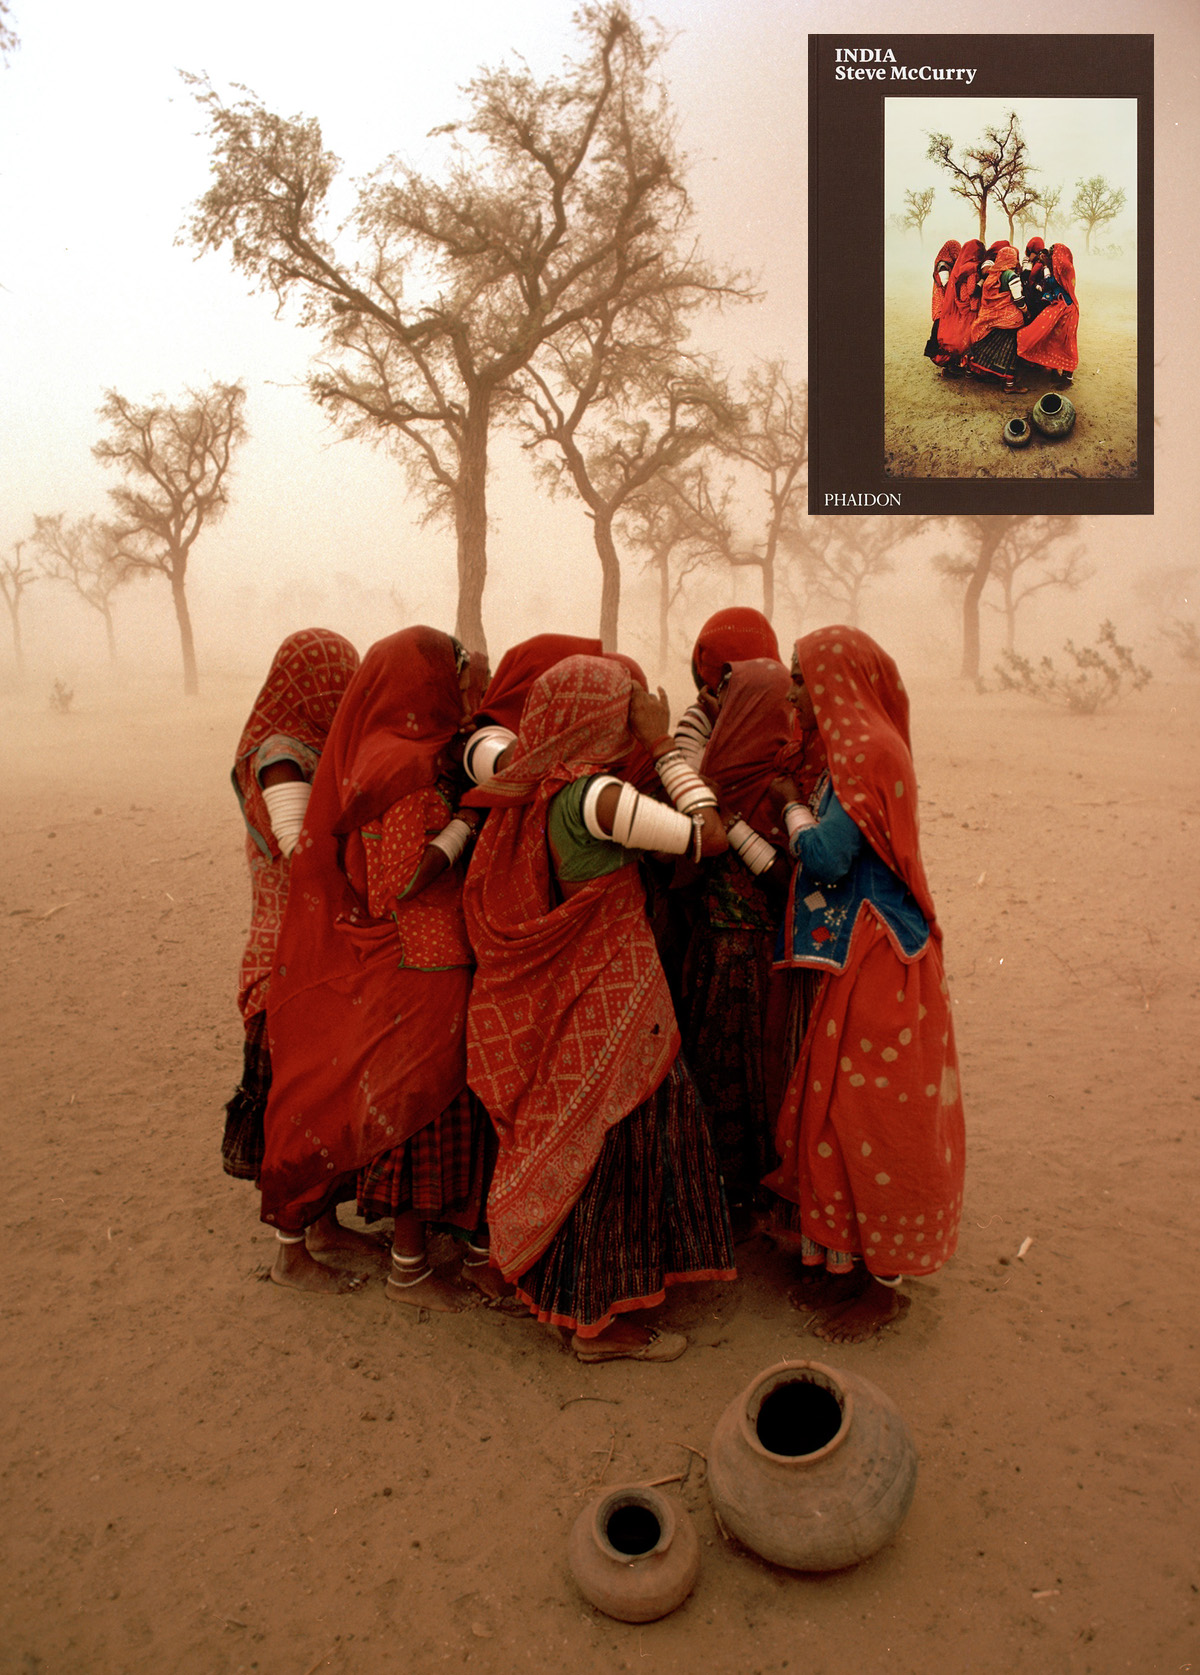 Dust Storm, Rajasthan, India, 1983